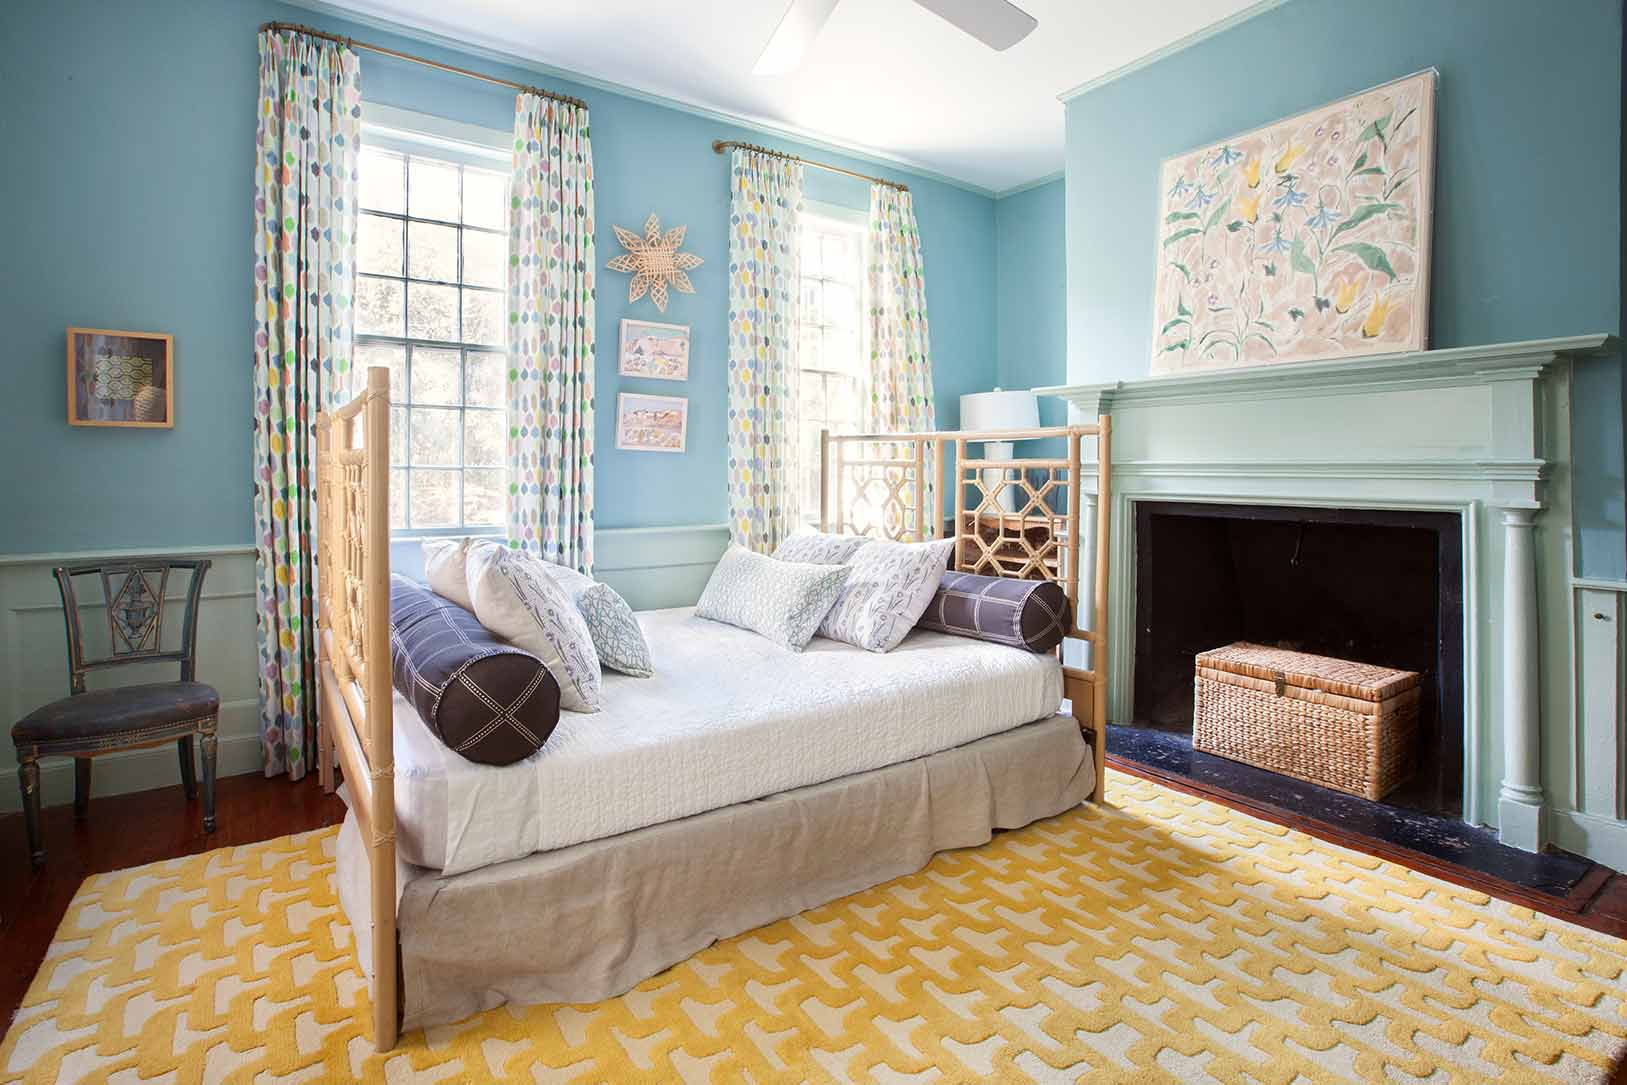 In South Carolina, a Century-Old Home is Refashioned for a Modern Family, Design*Sponge